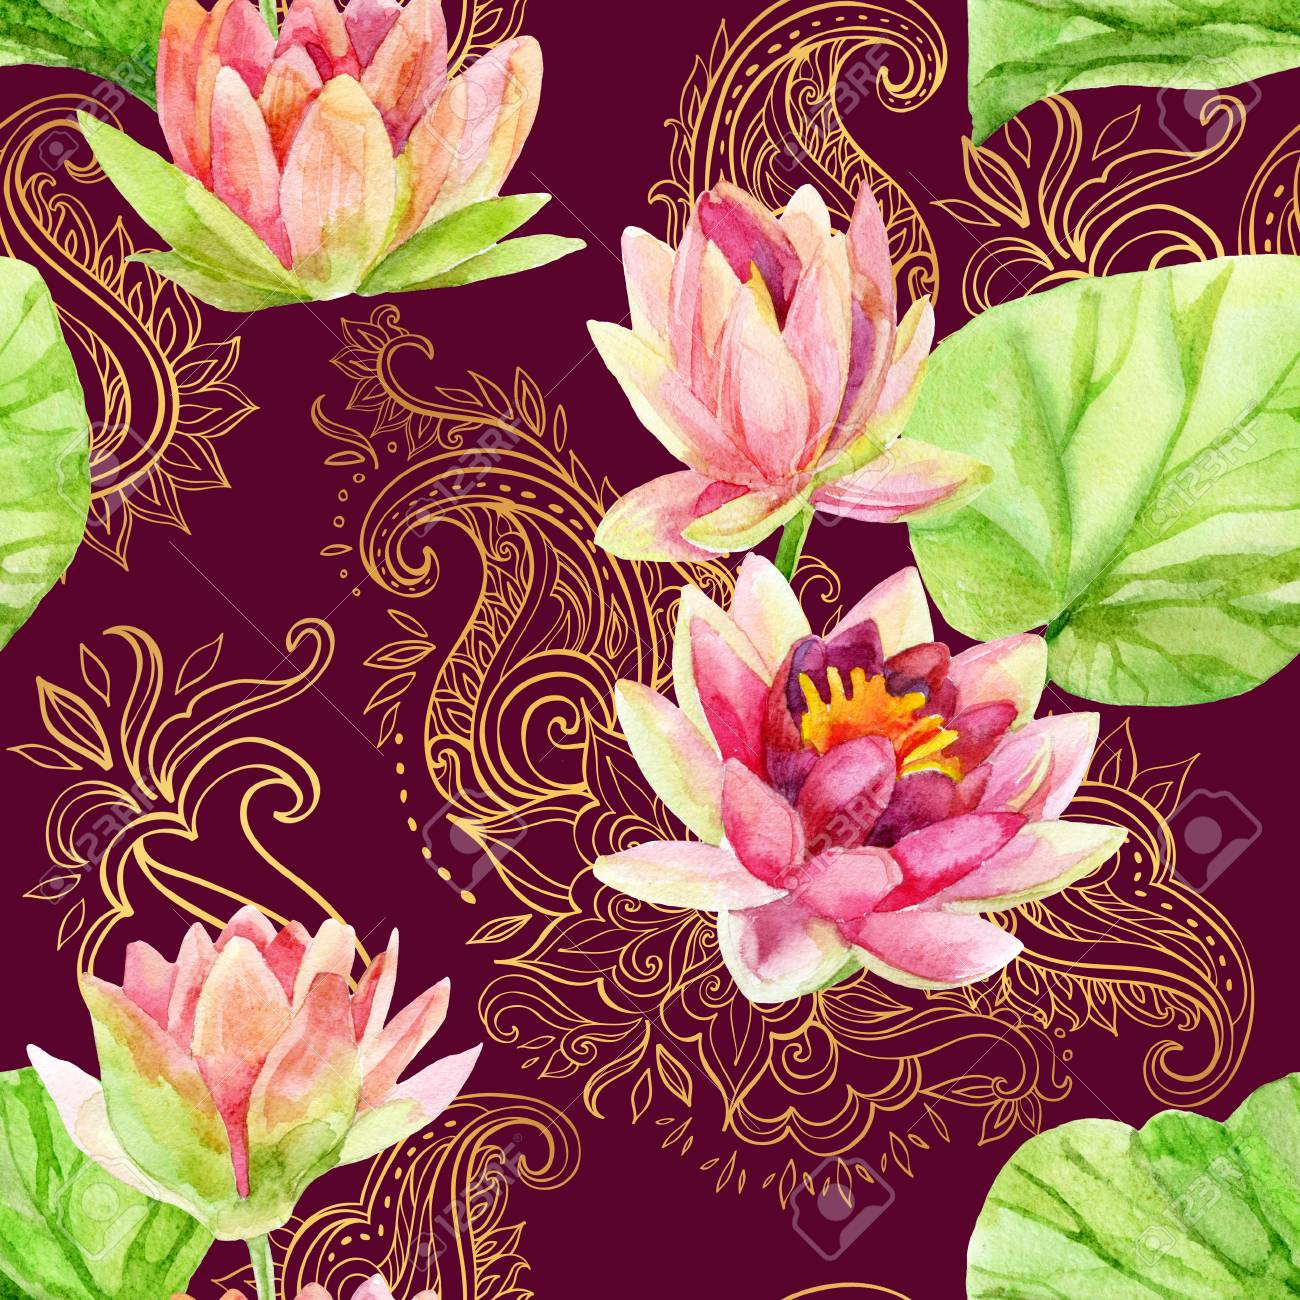 Watercolor Lotus Flower On Golden Ornament Watercolor Flowers